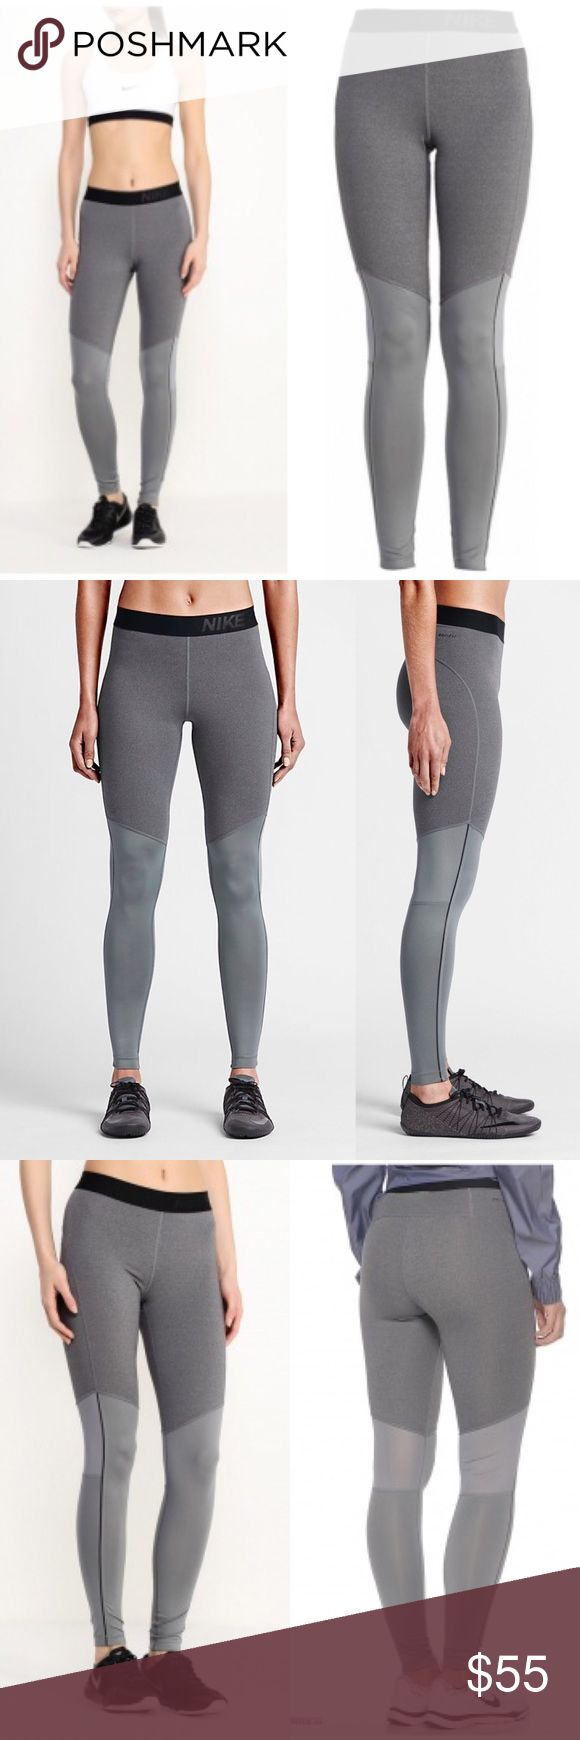 Nike Pro Hyperwarm Max Leggings Designed with Dri-FIT provide warmth & ventilation when working out in colder conditions. Dri-FIT fabric helps keep you dry and comfortable, Mix of French terry & jersey fabrics for a soft feel & enhanced warmth, Stretch mesh panels at back knees for breathability & natural range of motion, Fitted design for easy layering and mobility, Stretch waistband offers a secure, comfortable fit, Flat seams.Dri-FIT 88% polyester 12% elastane. Nike Pants Leggings